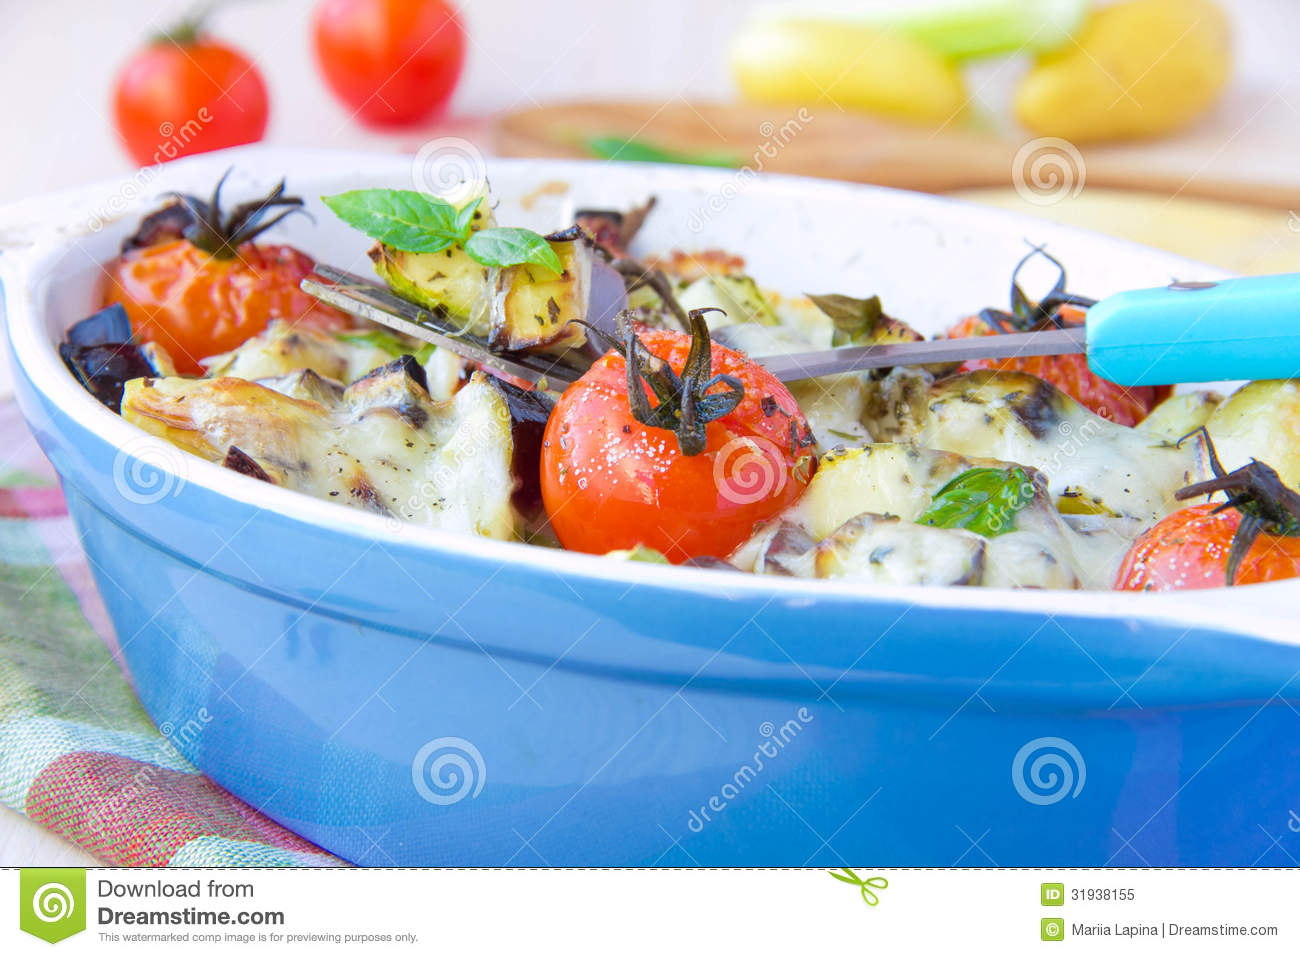 Mixed Vegetable In Blue Bowl Baked In The Oven With Cheese